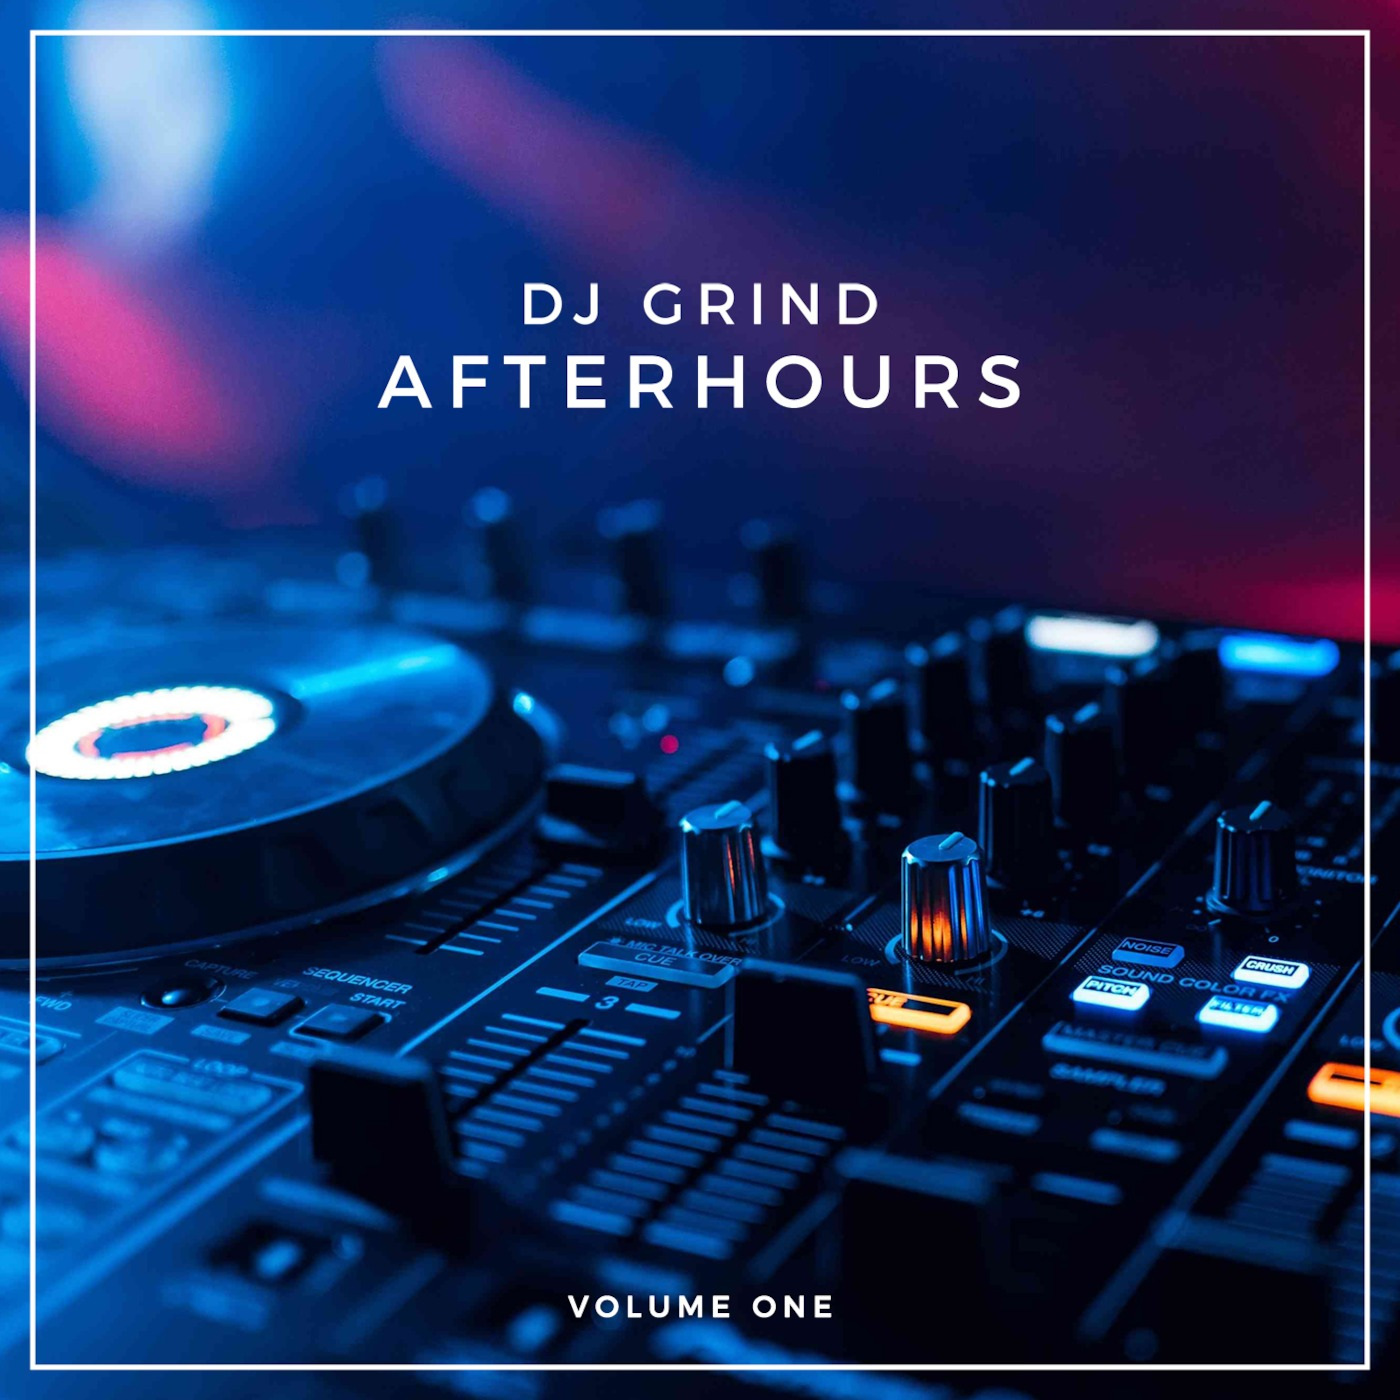 The Daily Grind - DJ GRIND